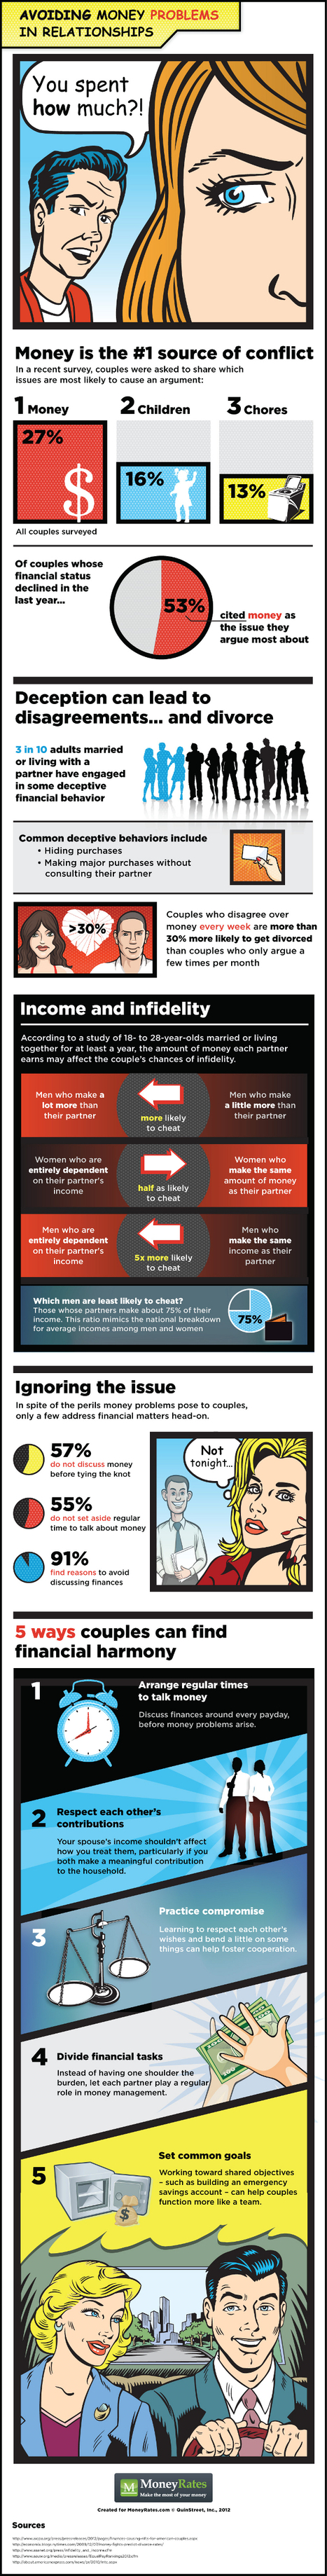 Avoiding Money Problems In Relationships (Infographic) | Business ... | The Money Couple | Scoop.it